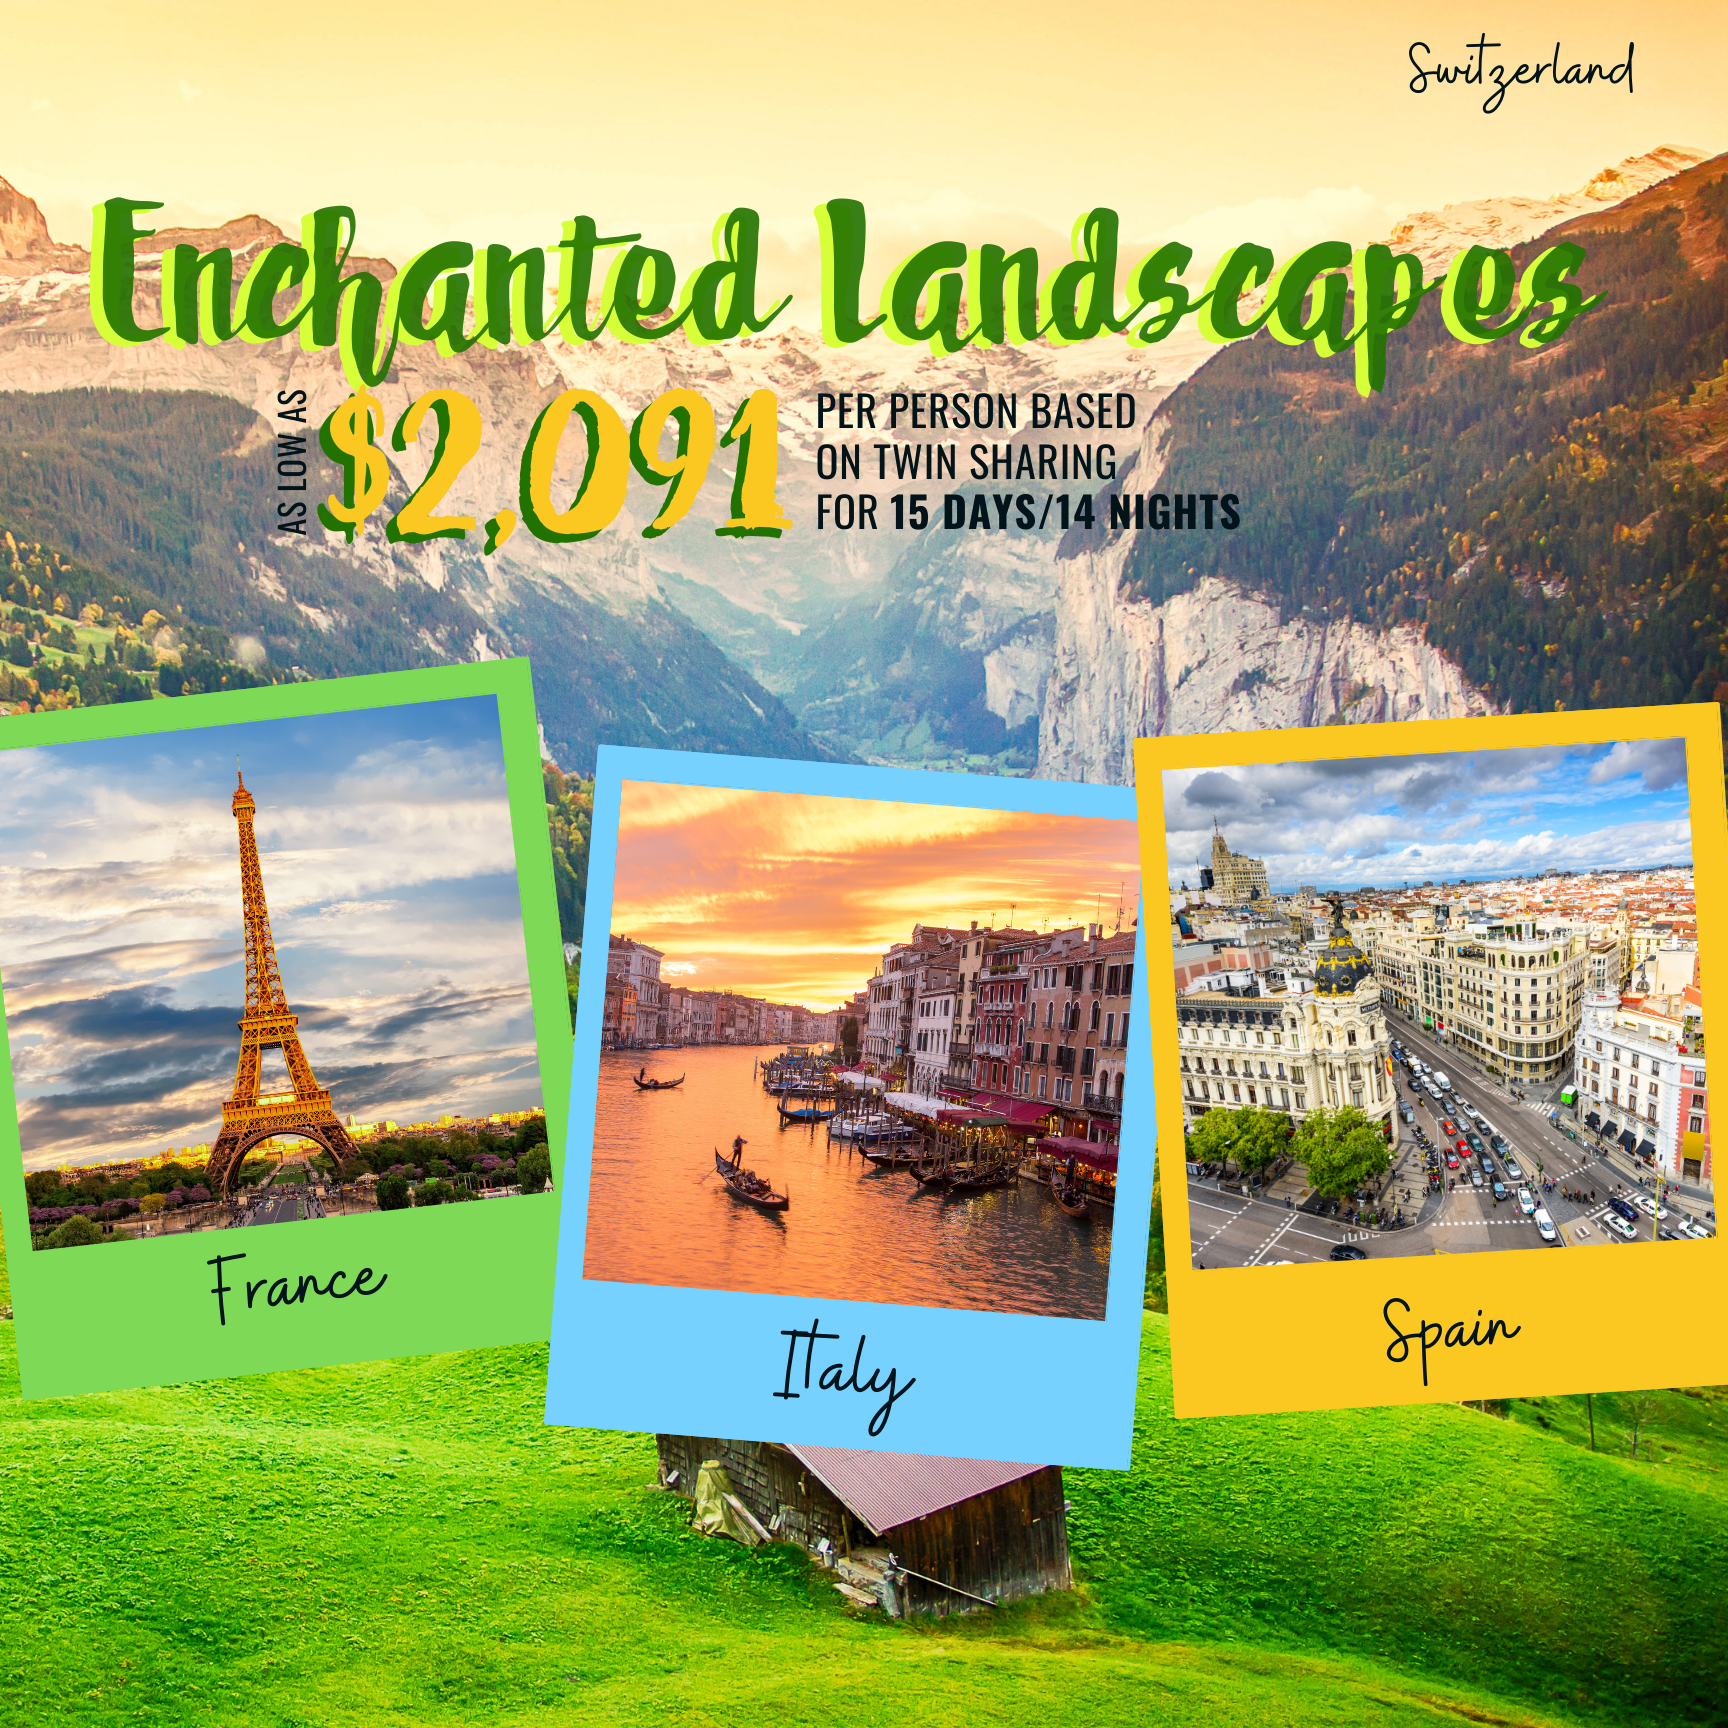 Enchanted Landscapes